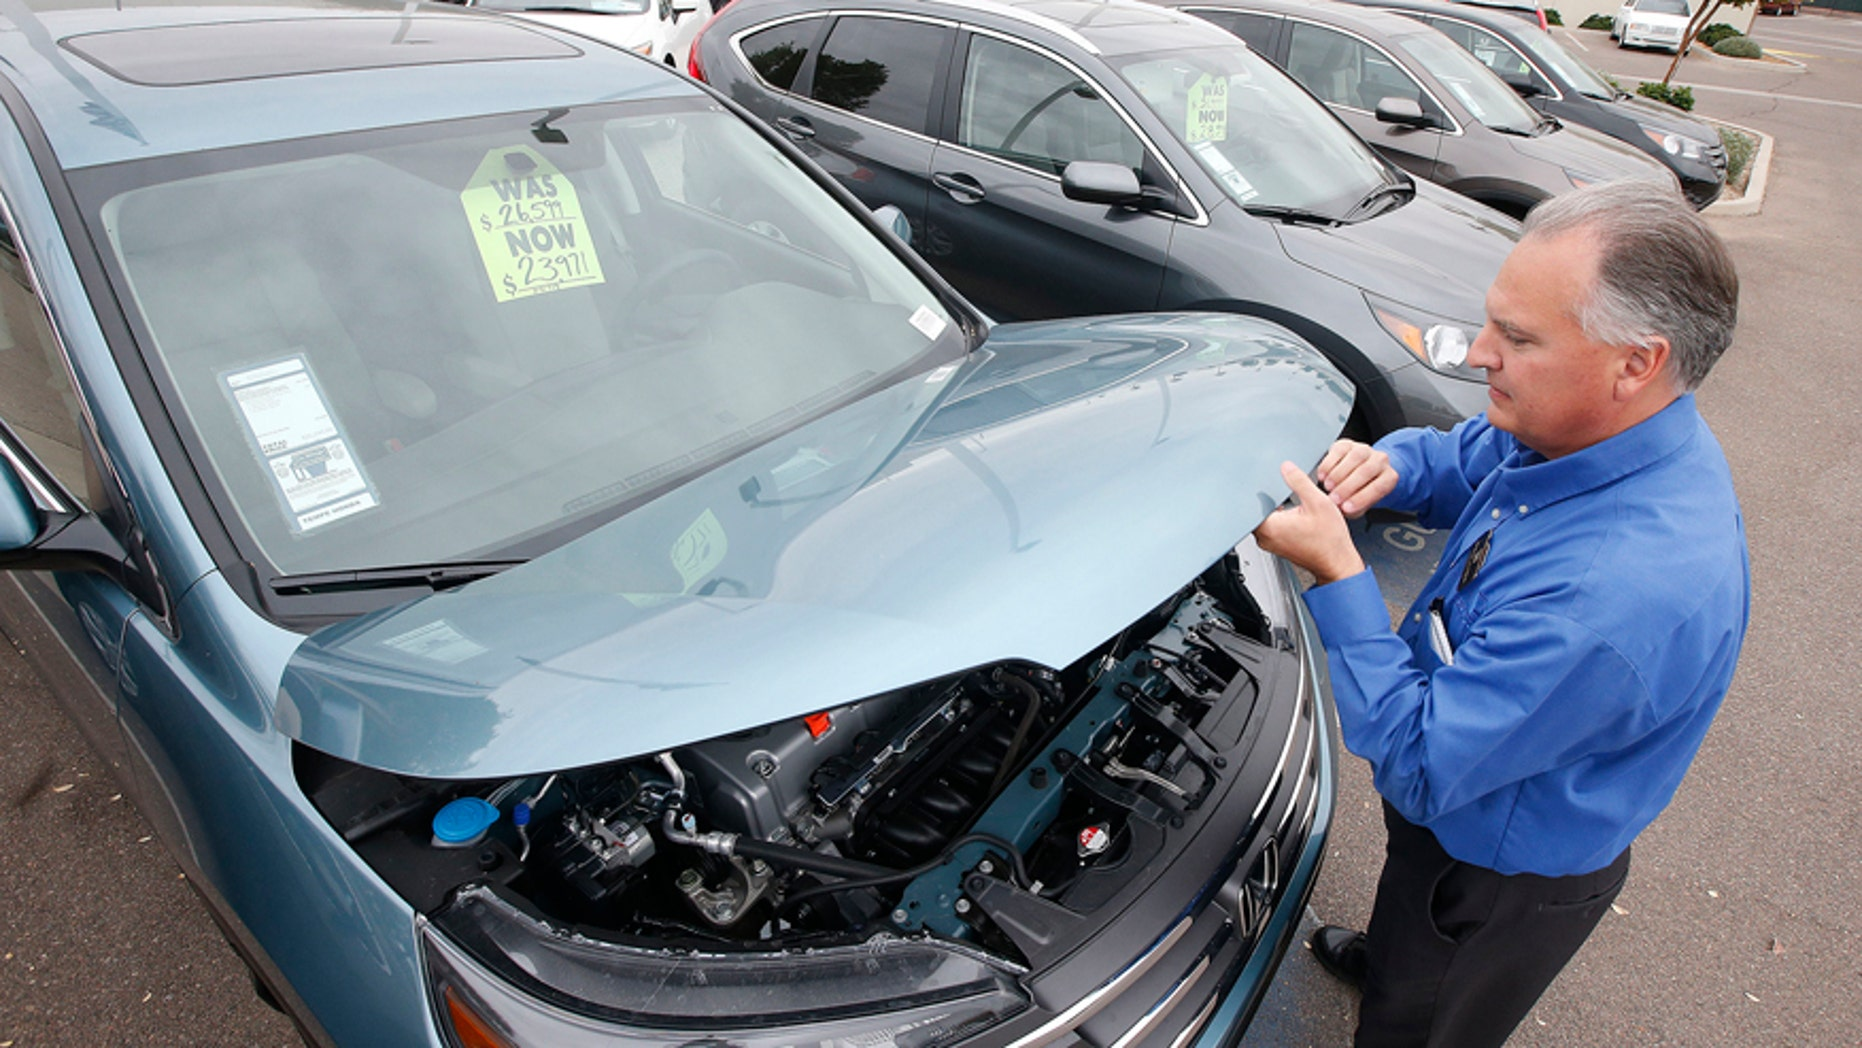 FILE - In this Dec. 2, 2014, file photo, Mike Johnson, a sales manager at a Honda car dealership, opens the hood of a Honda CRV SUV, in Tempe, Ariz. Automakers release vehicle sales for June 2015 on Wednesday, July 1, 2015. (AP Photo/Ross D. Franklin, File)